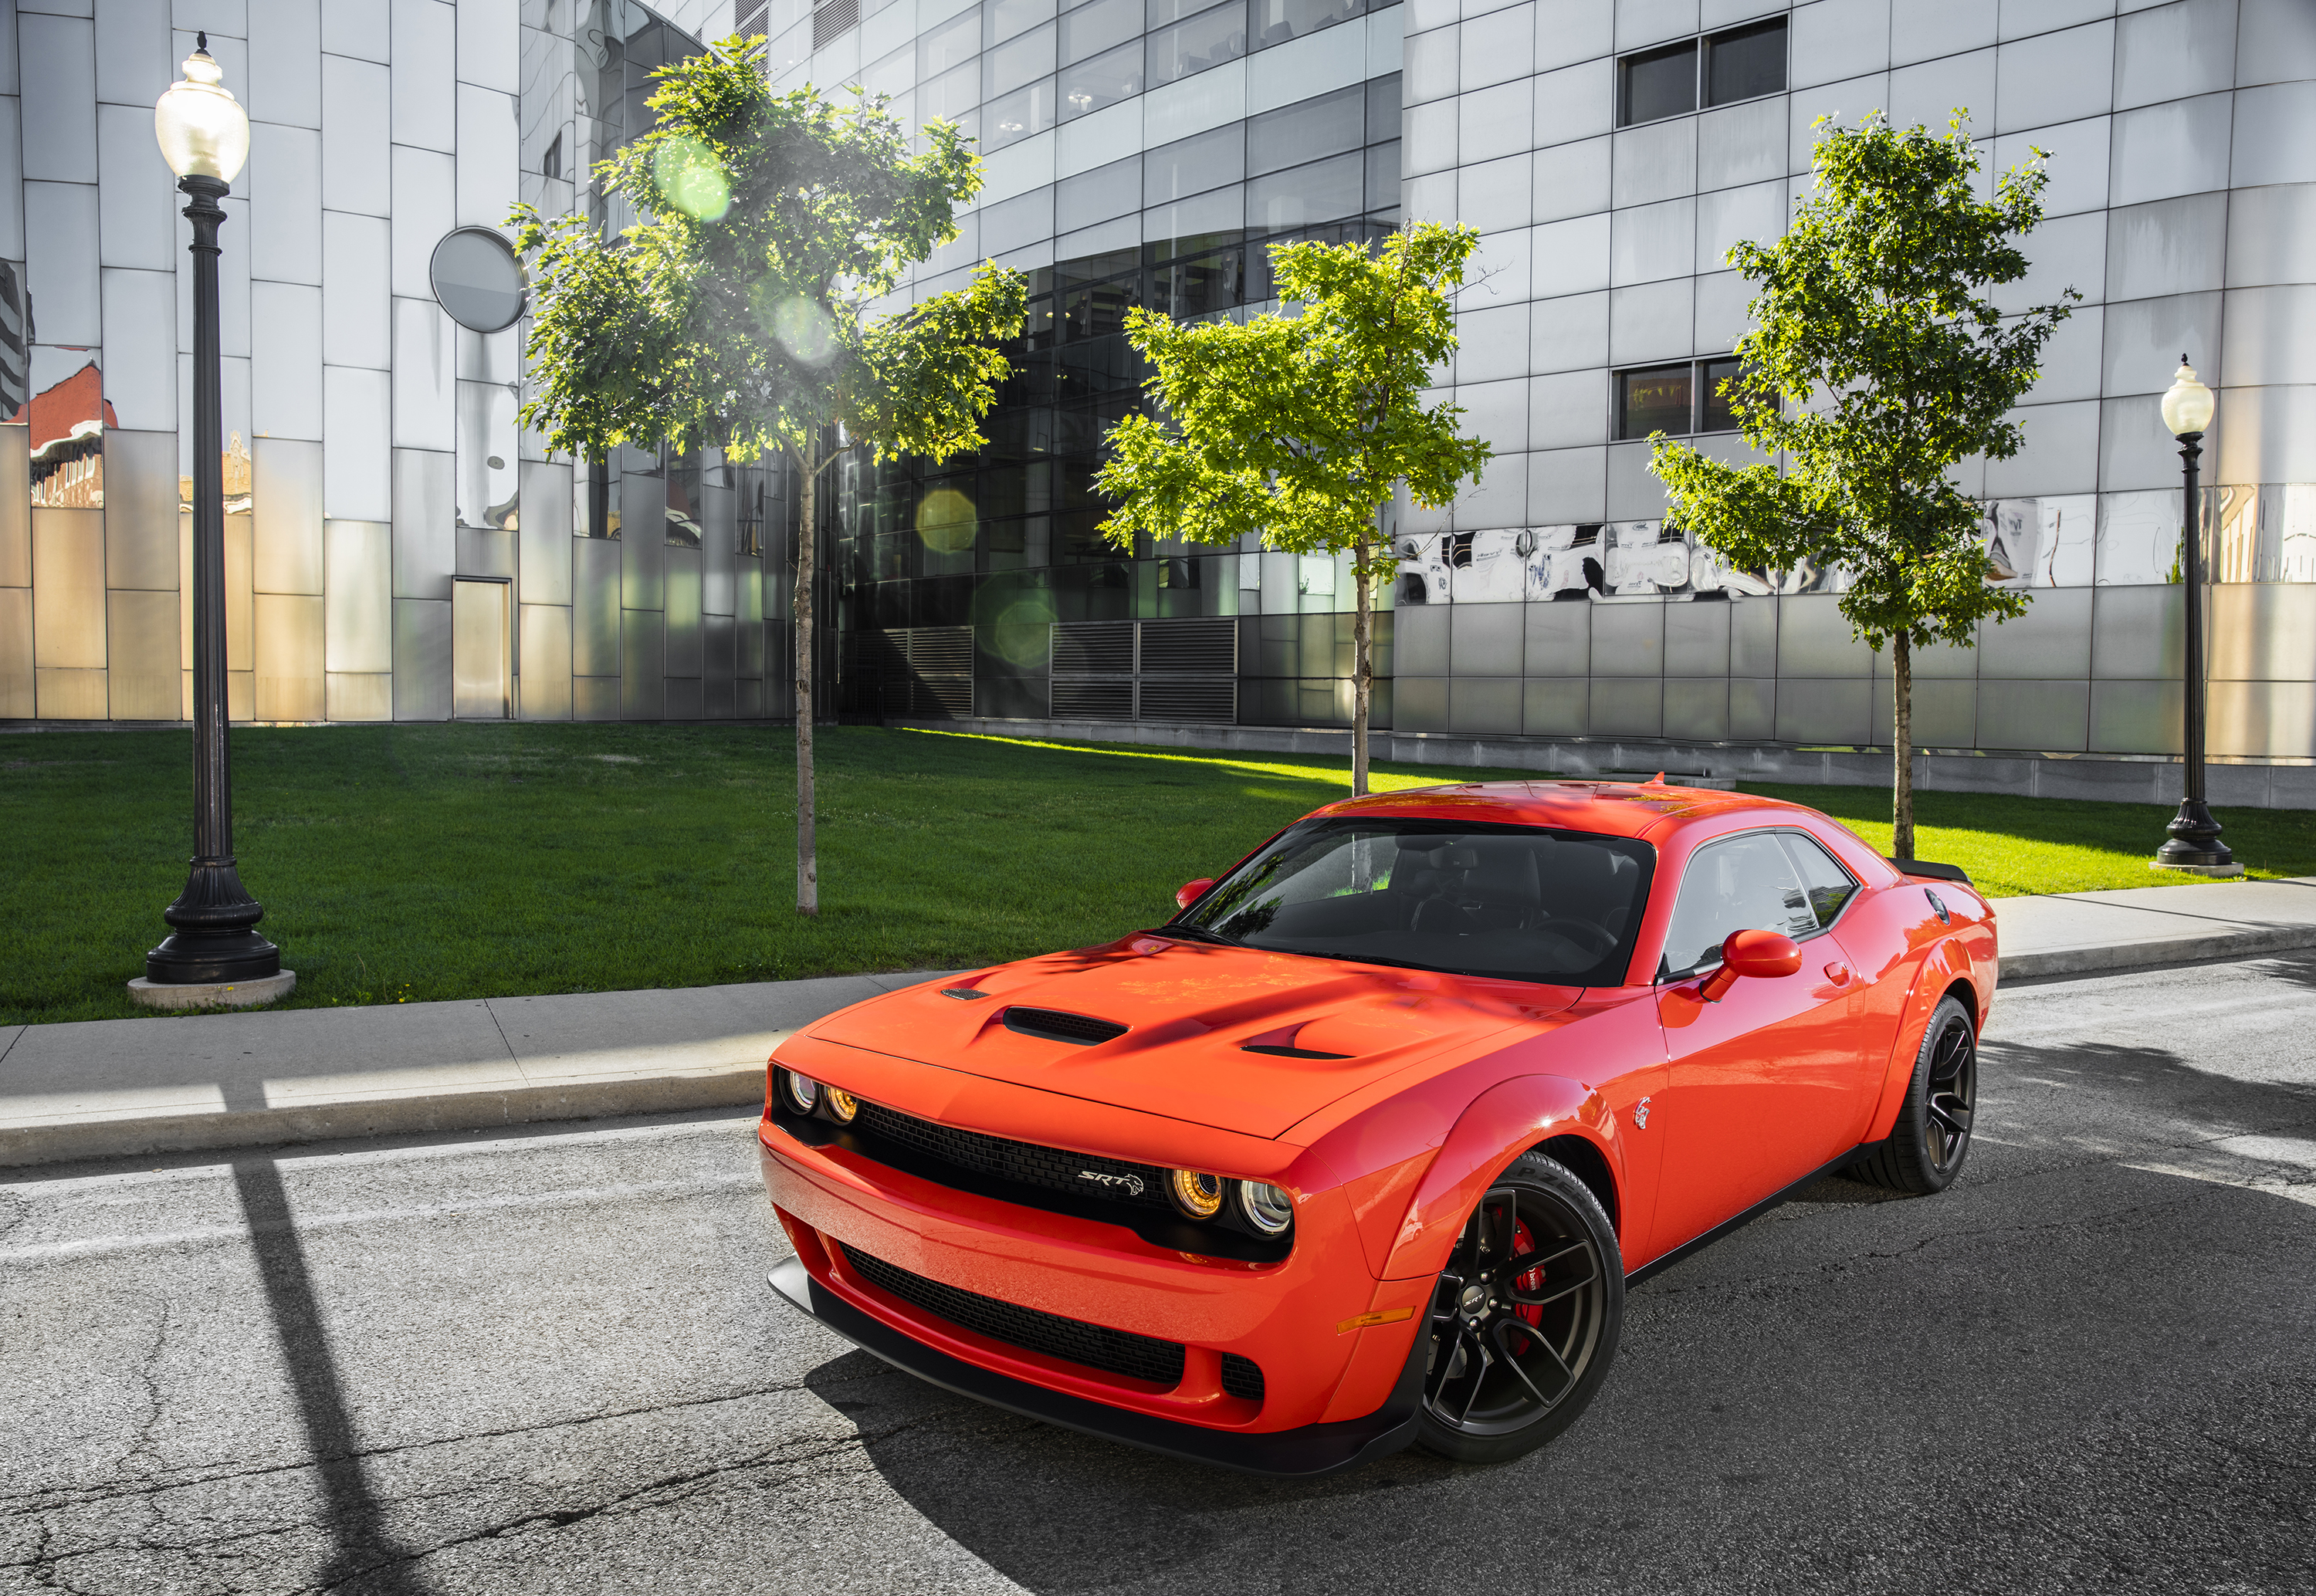 Car Dodge Dodge Challenger Dodge Challenger Srt Muscle Car Red Car Vehicle 3000x2068